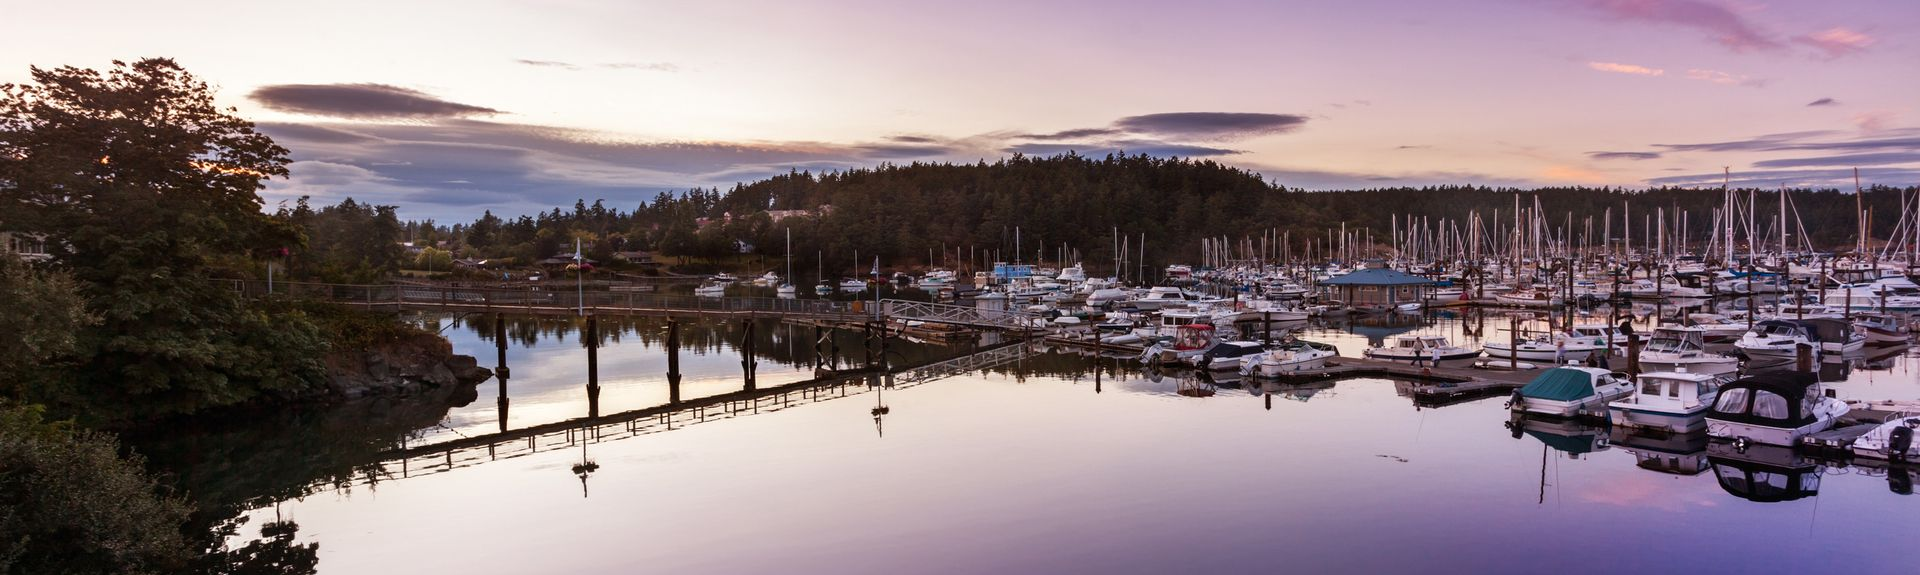 Friday Harbor, Washington, United States of America